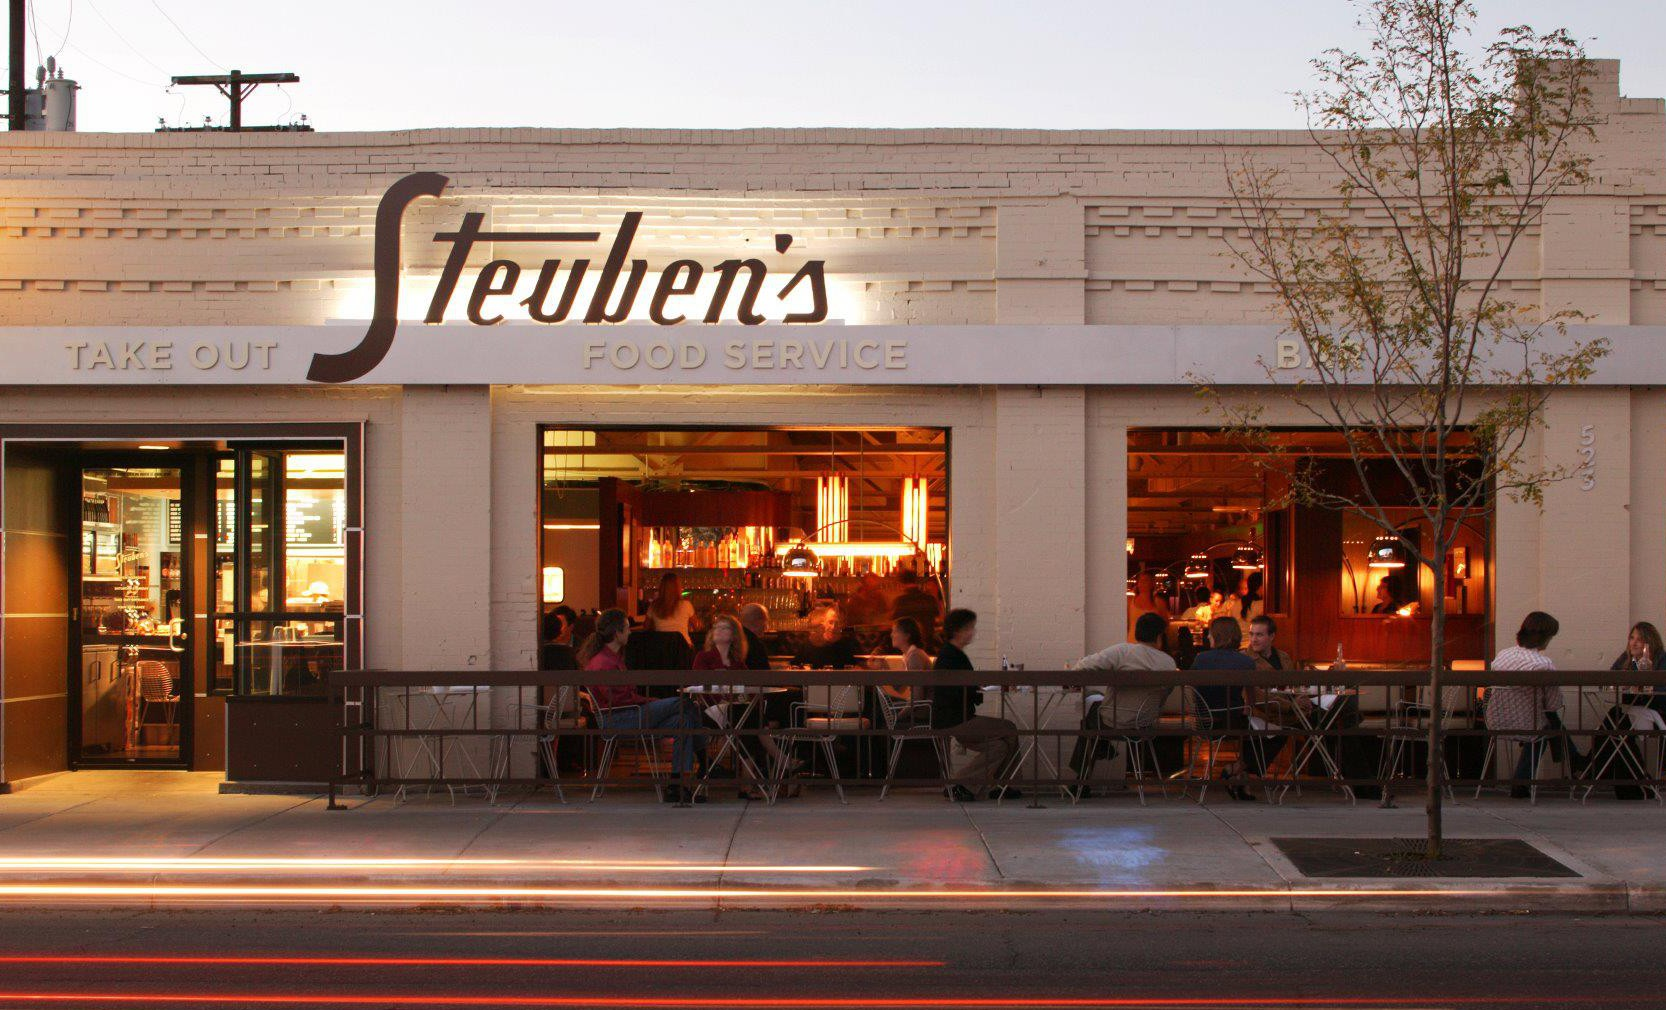 LocalEats Steuben's Food Service in Denver restaurant pic